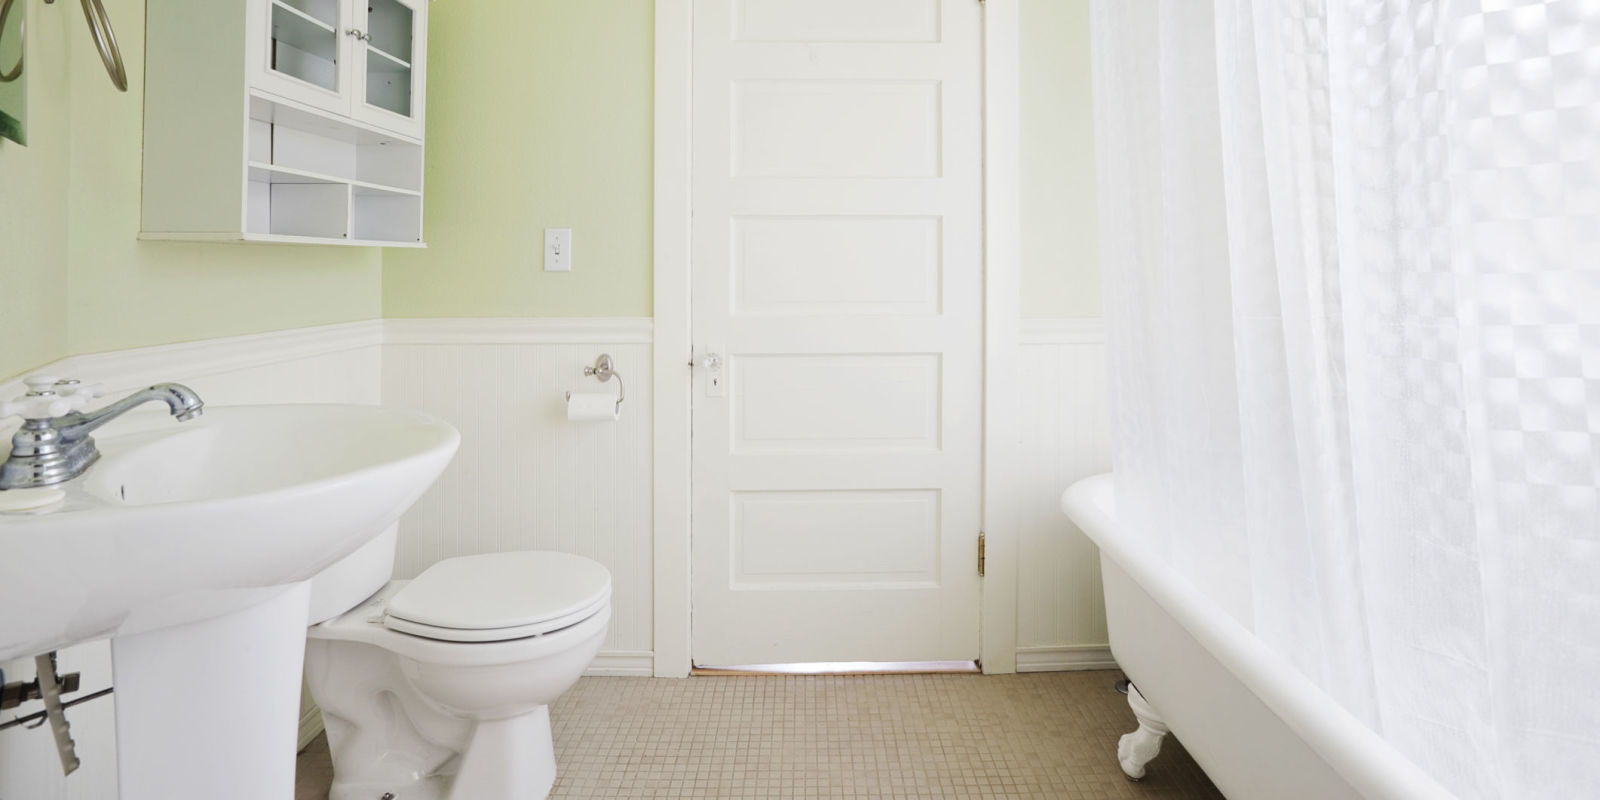 How to speed clean your bathroom bathroom cleaning tips for How often to clean bathroom